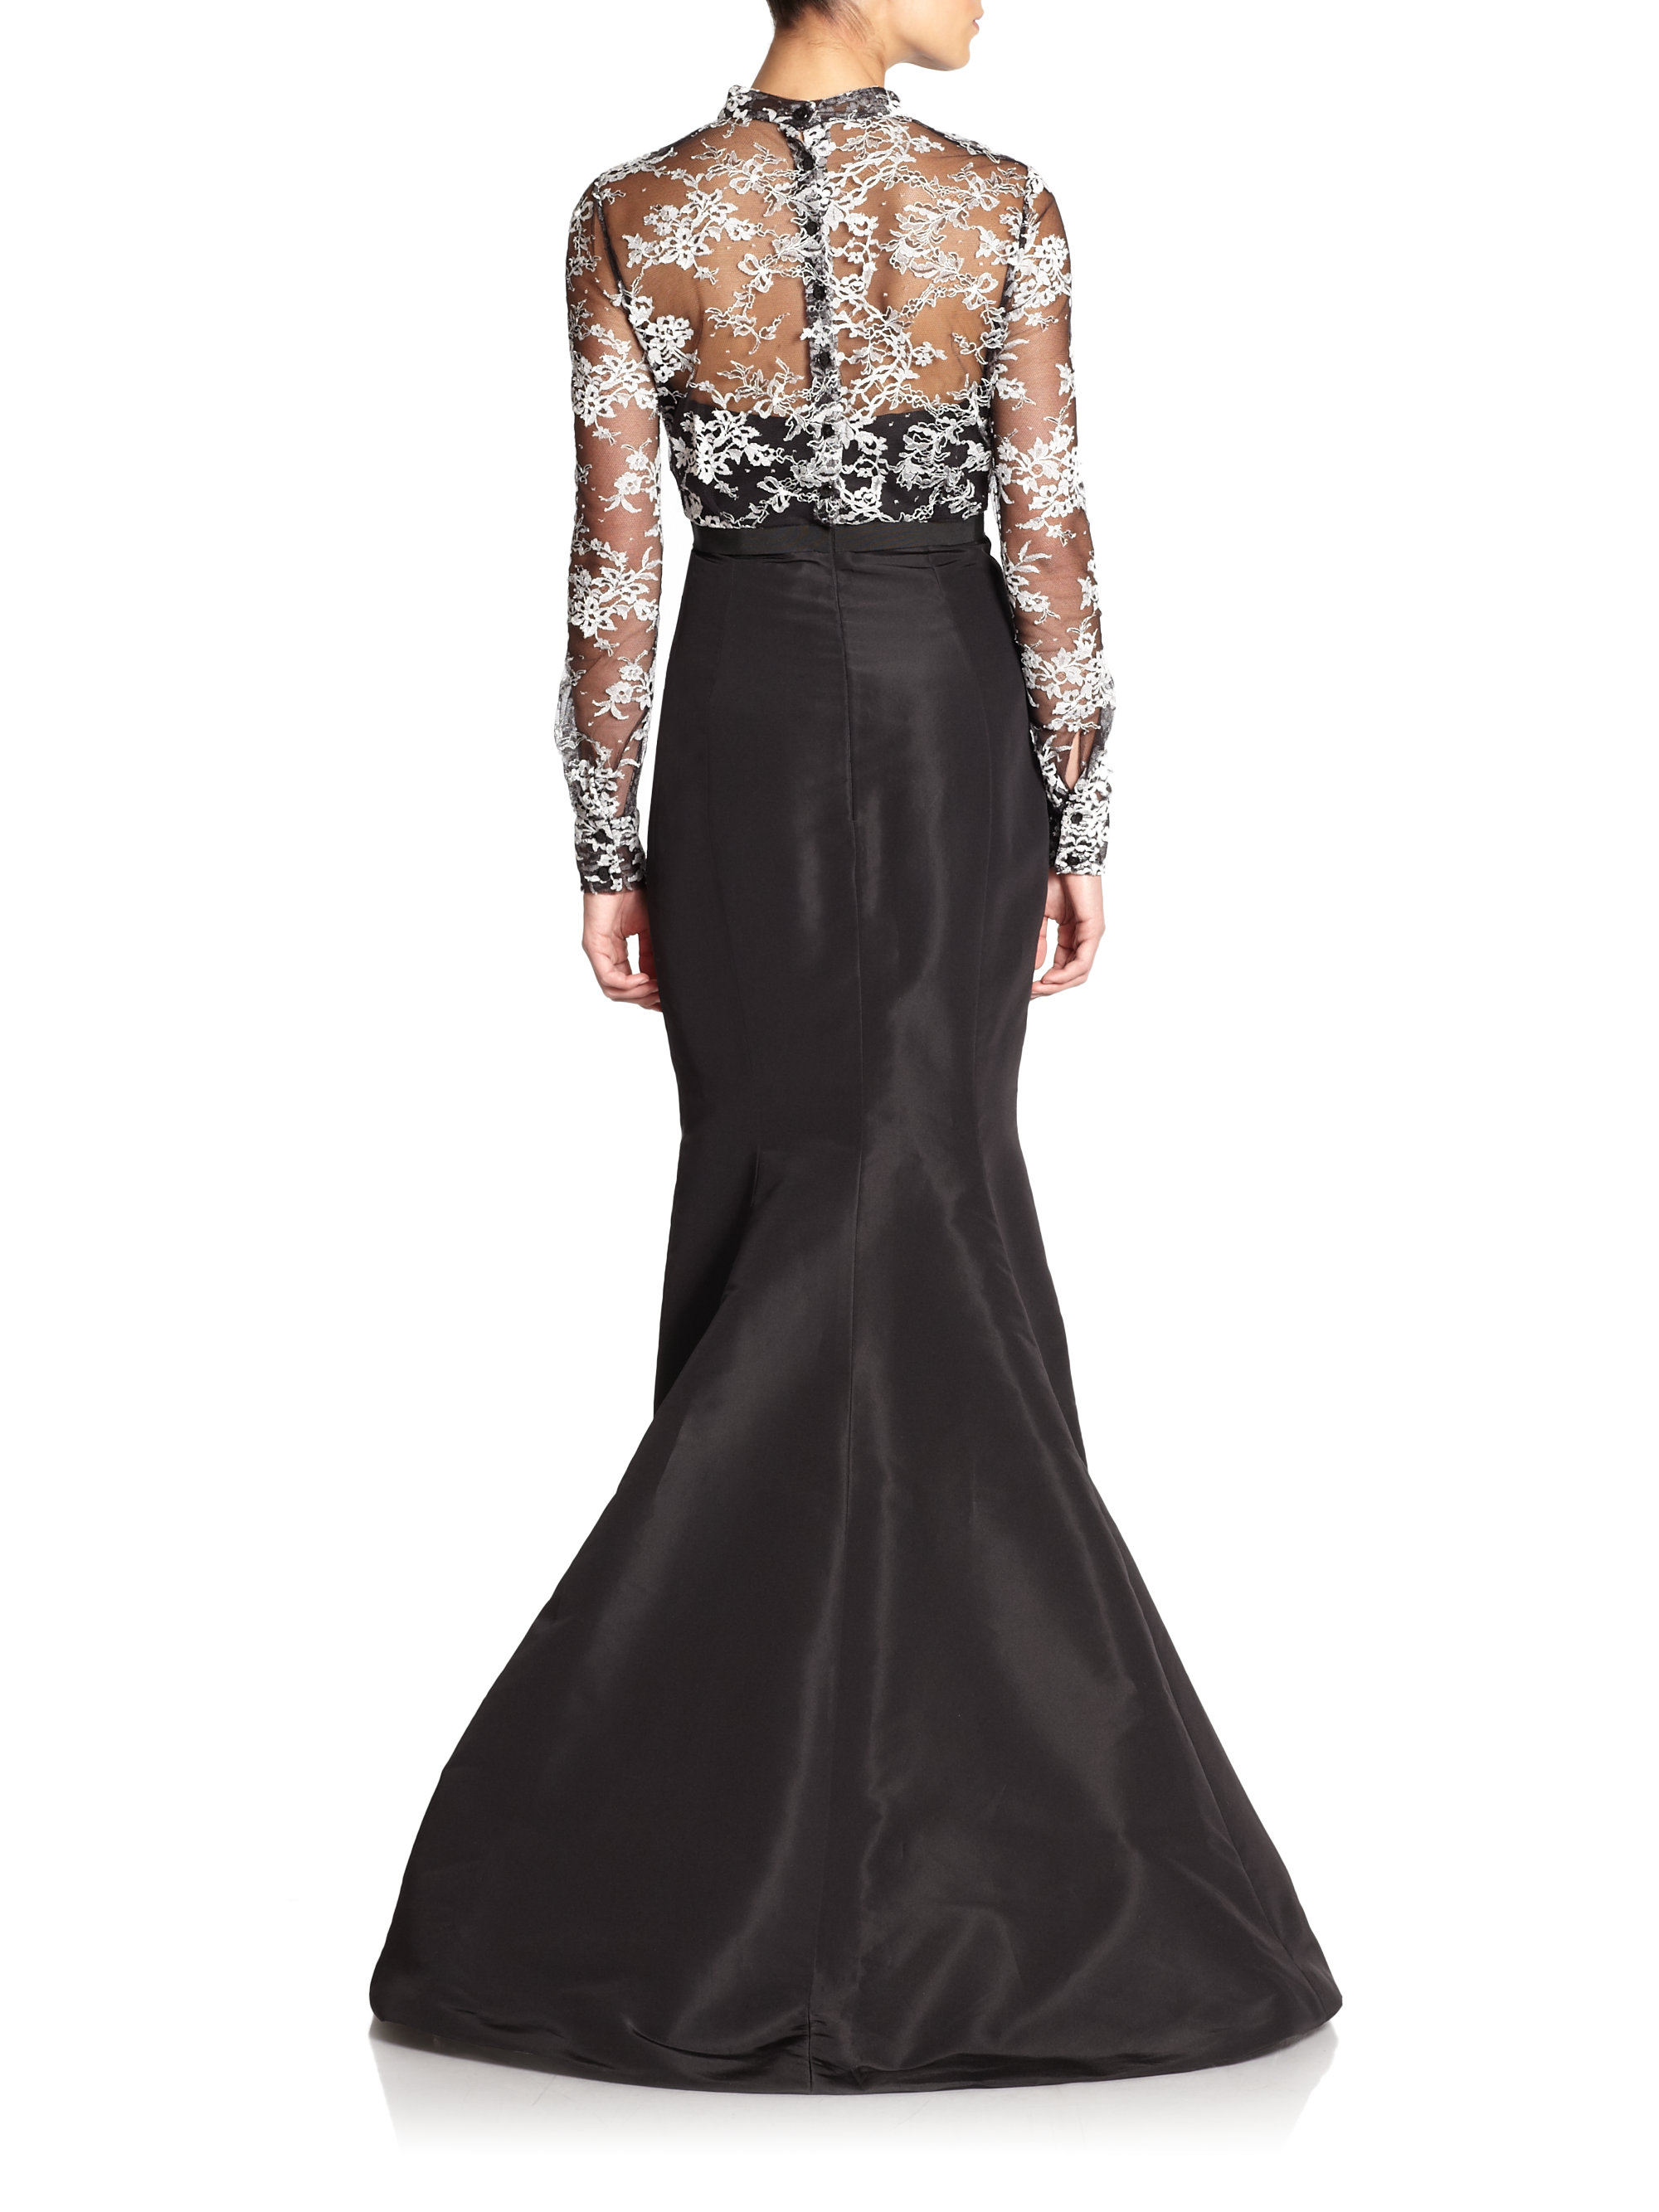 Lyst - Carolina Herrera Laceoverlay Evening Gown in Black